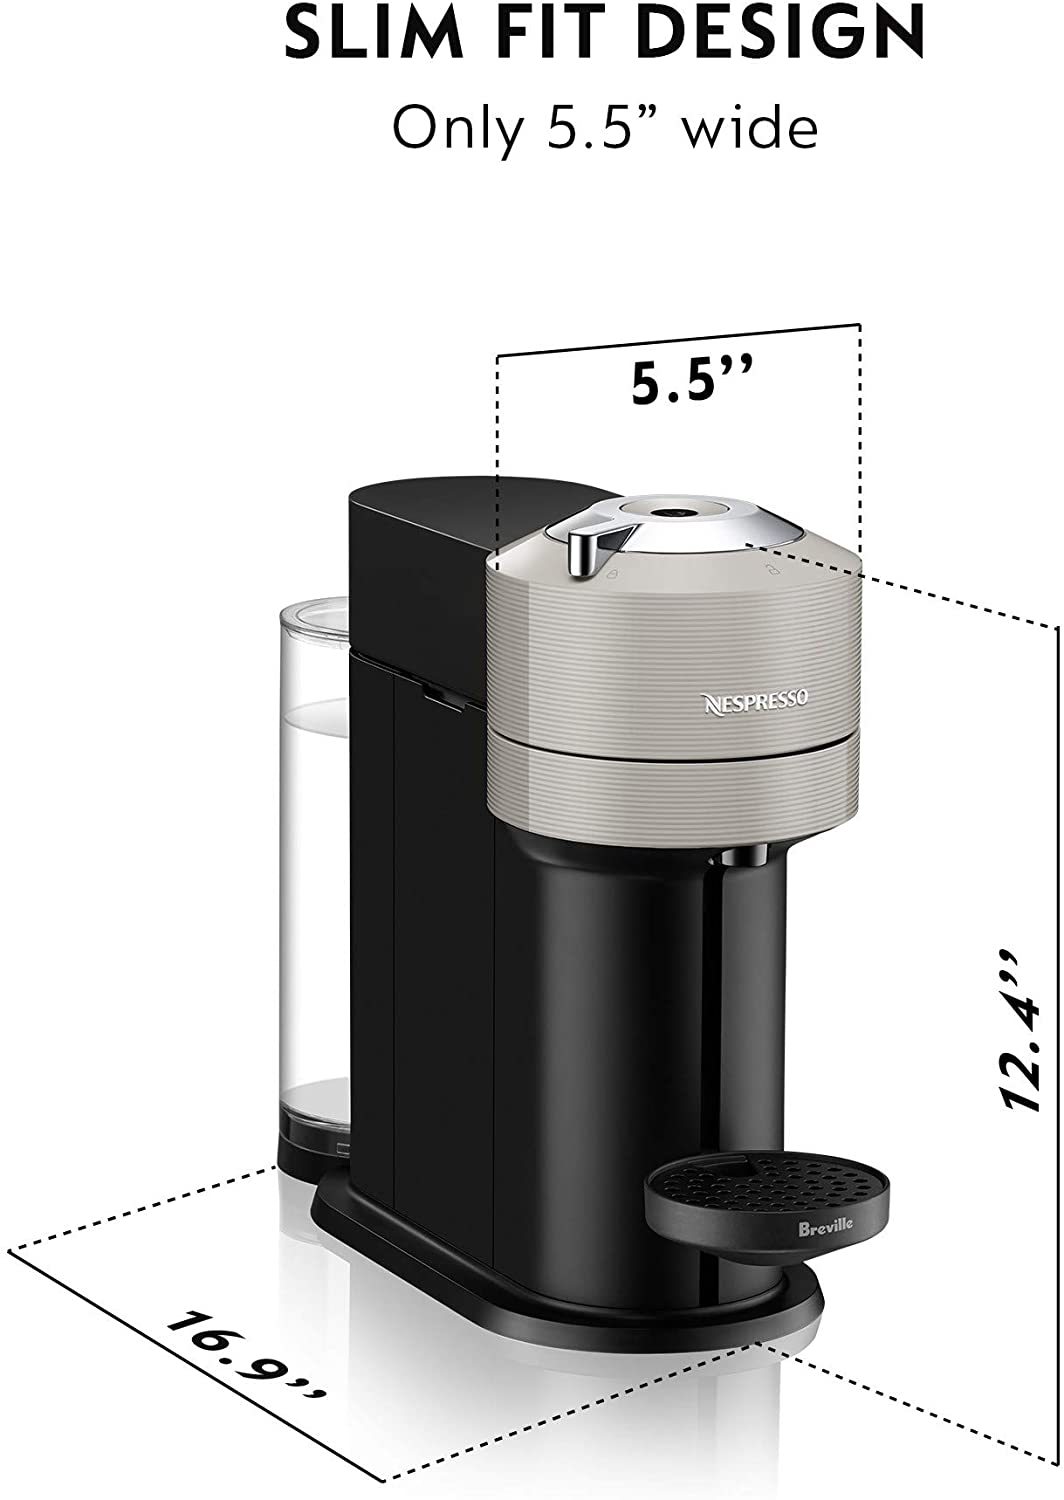 Slim fit design - Best home espresso machine under 200